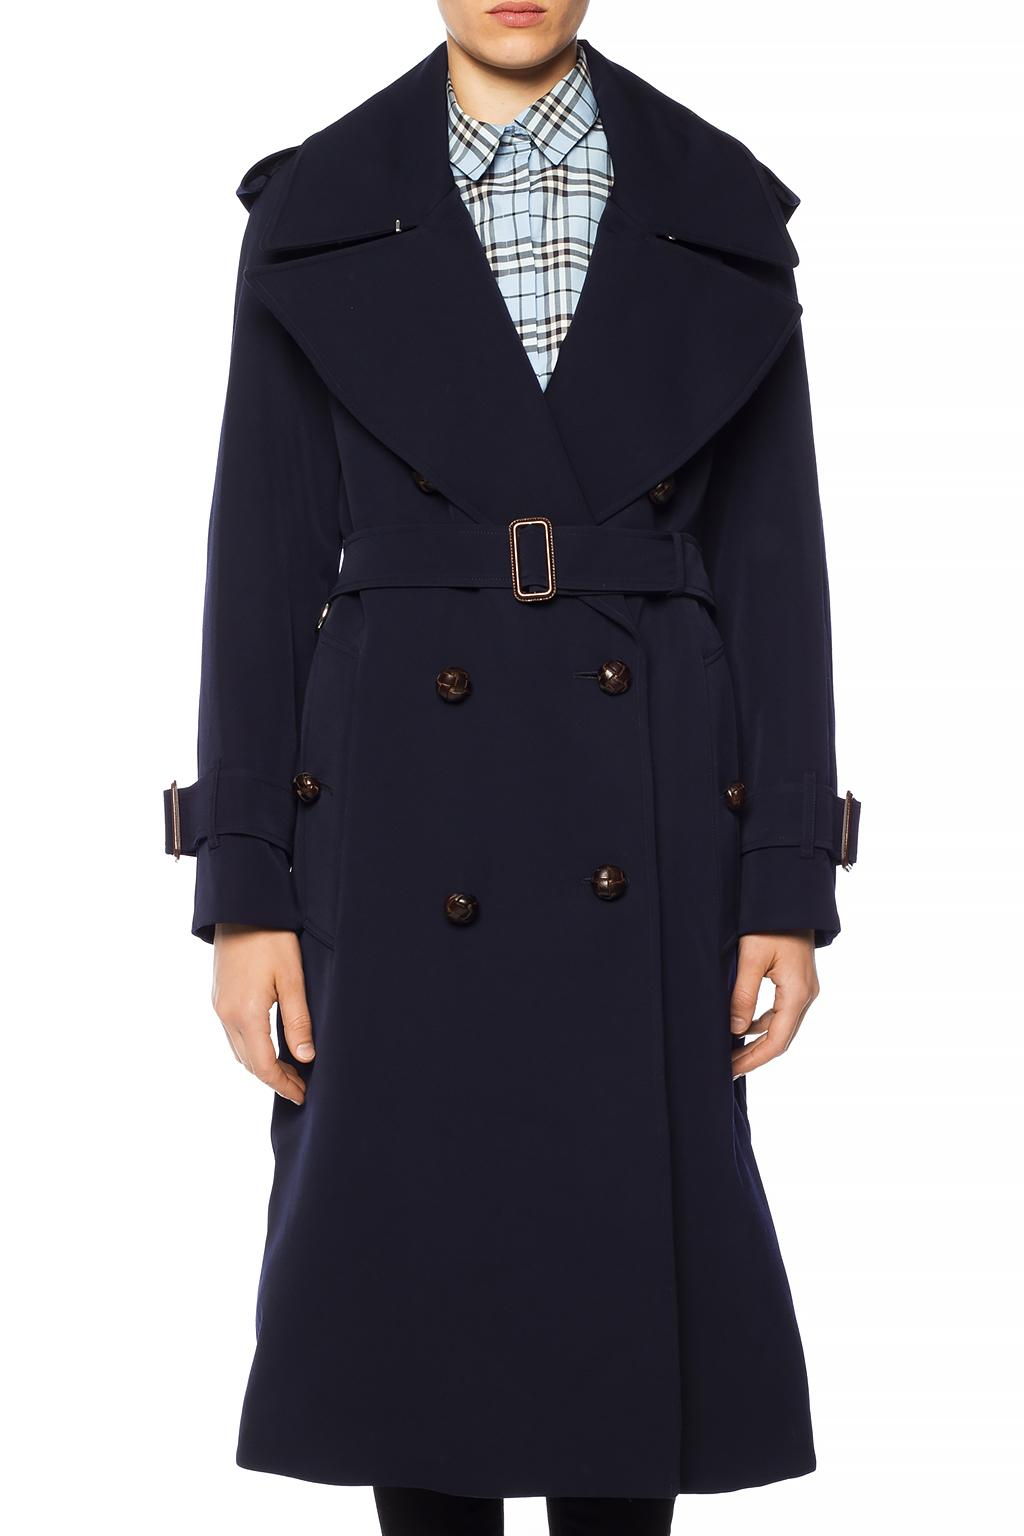 Burberry Double-breasted insulated trench